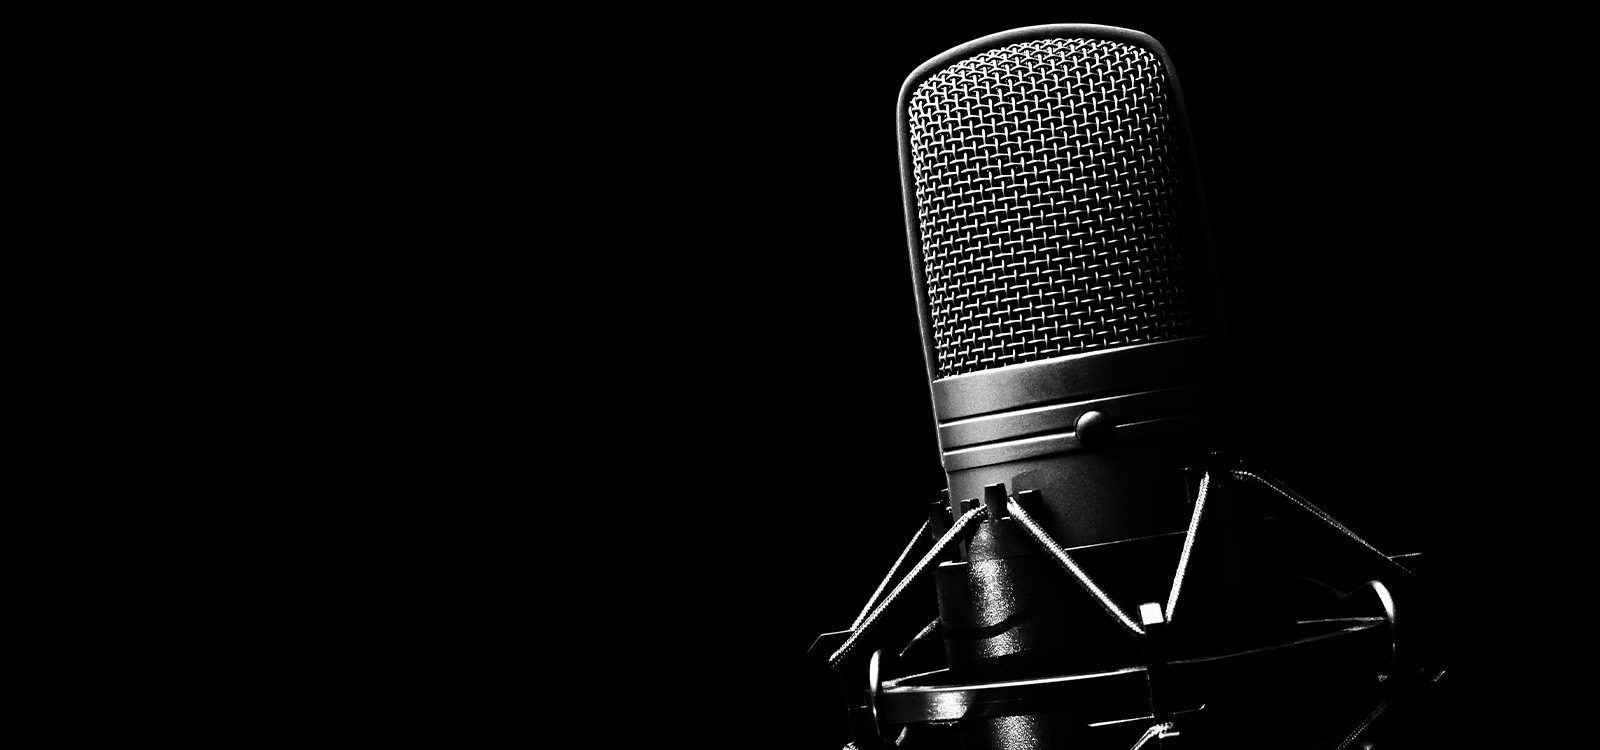 Top 10 Actuaries Institute podcasts of all time